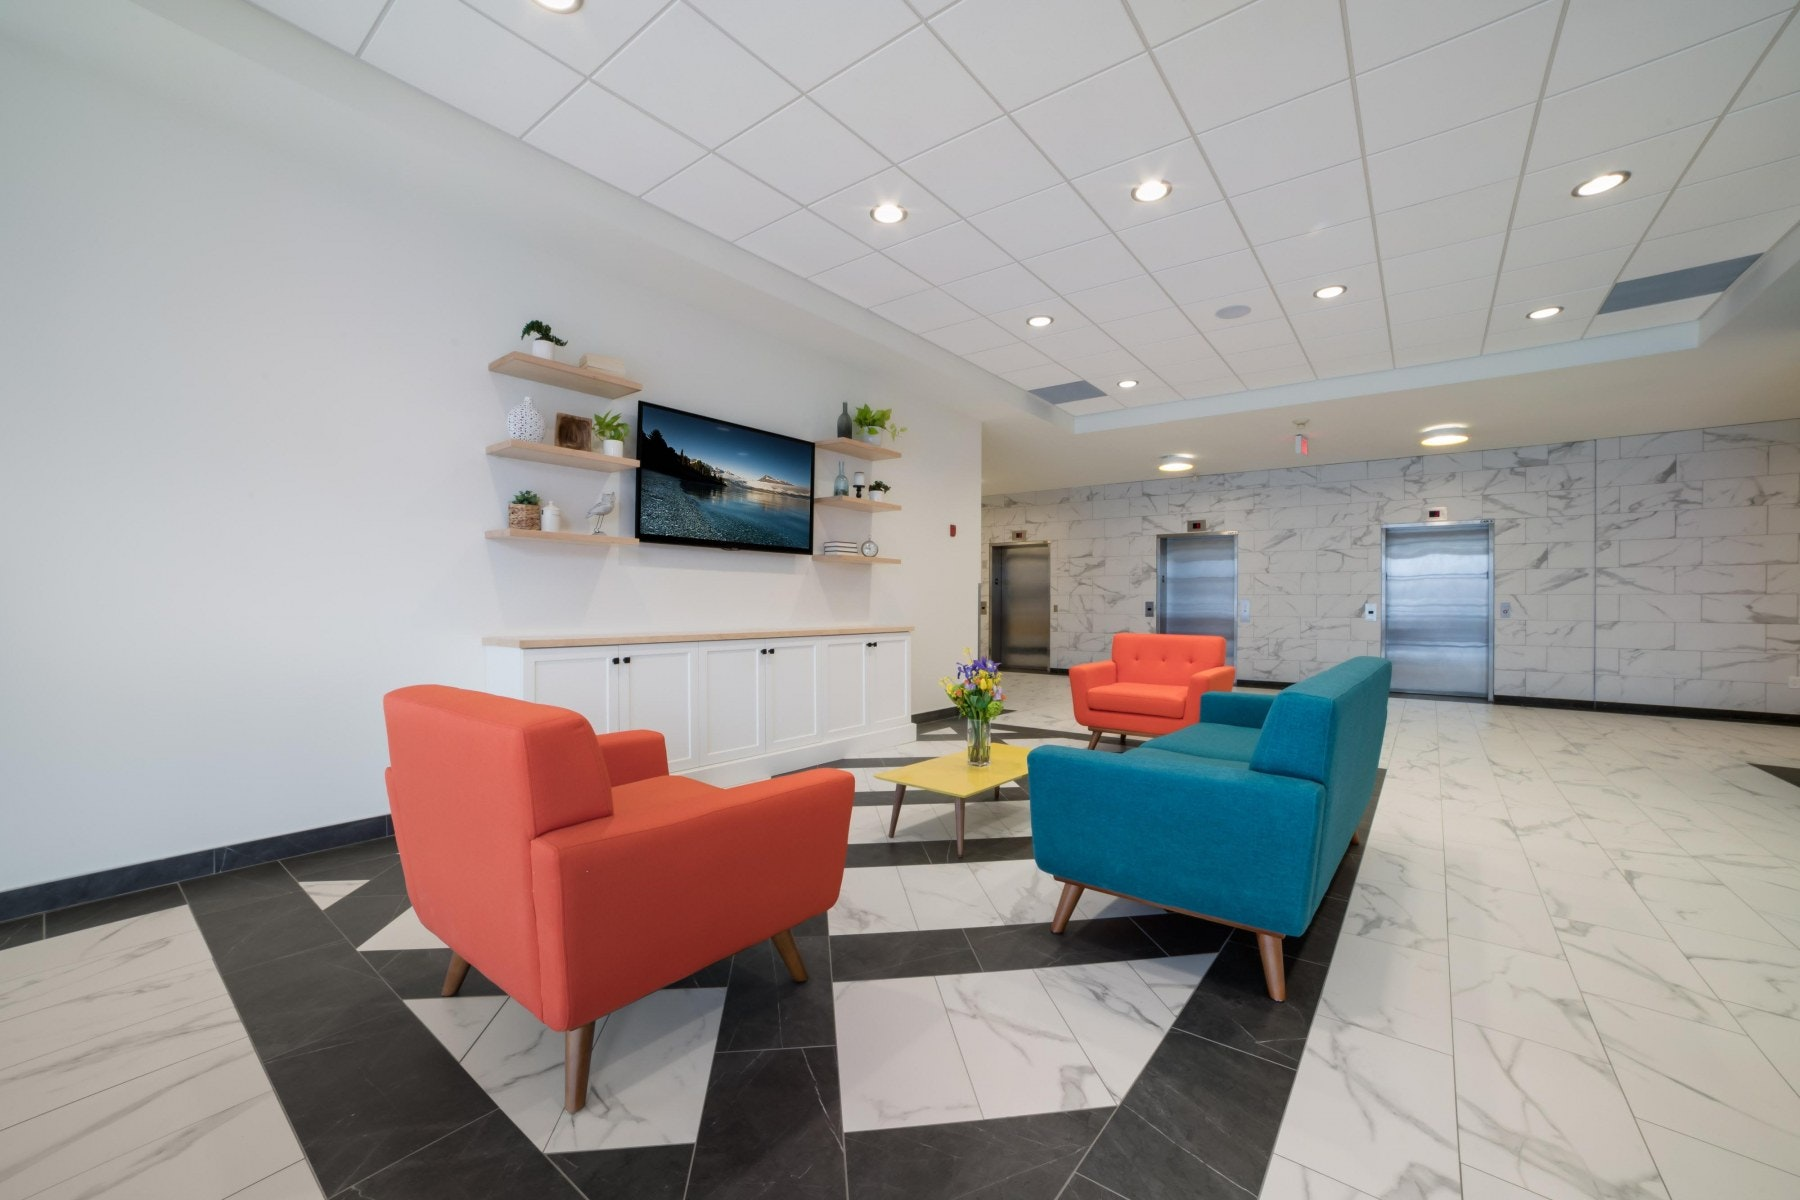 Lobby with couches, TV and shelves